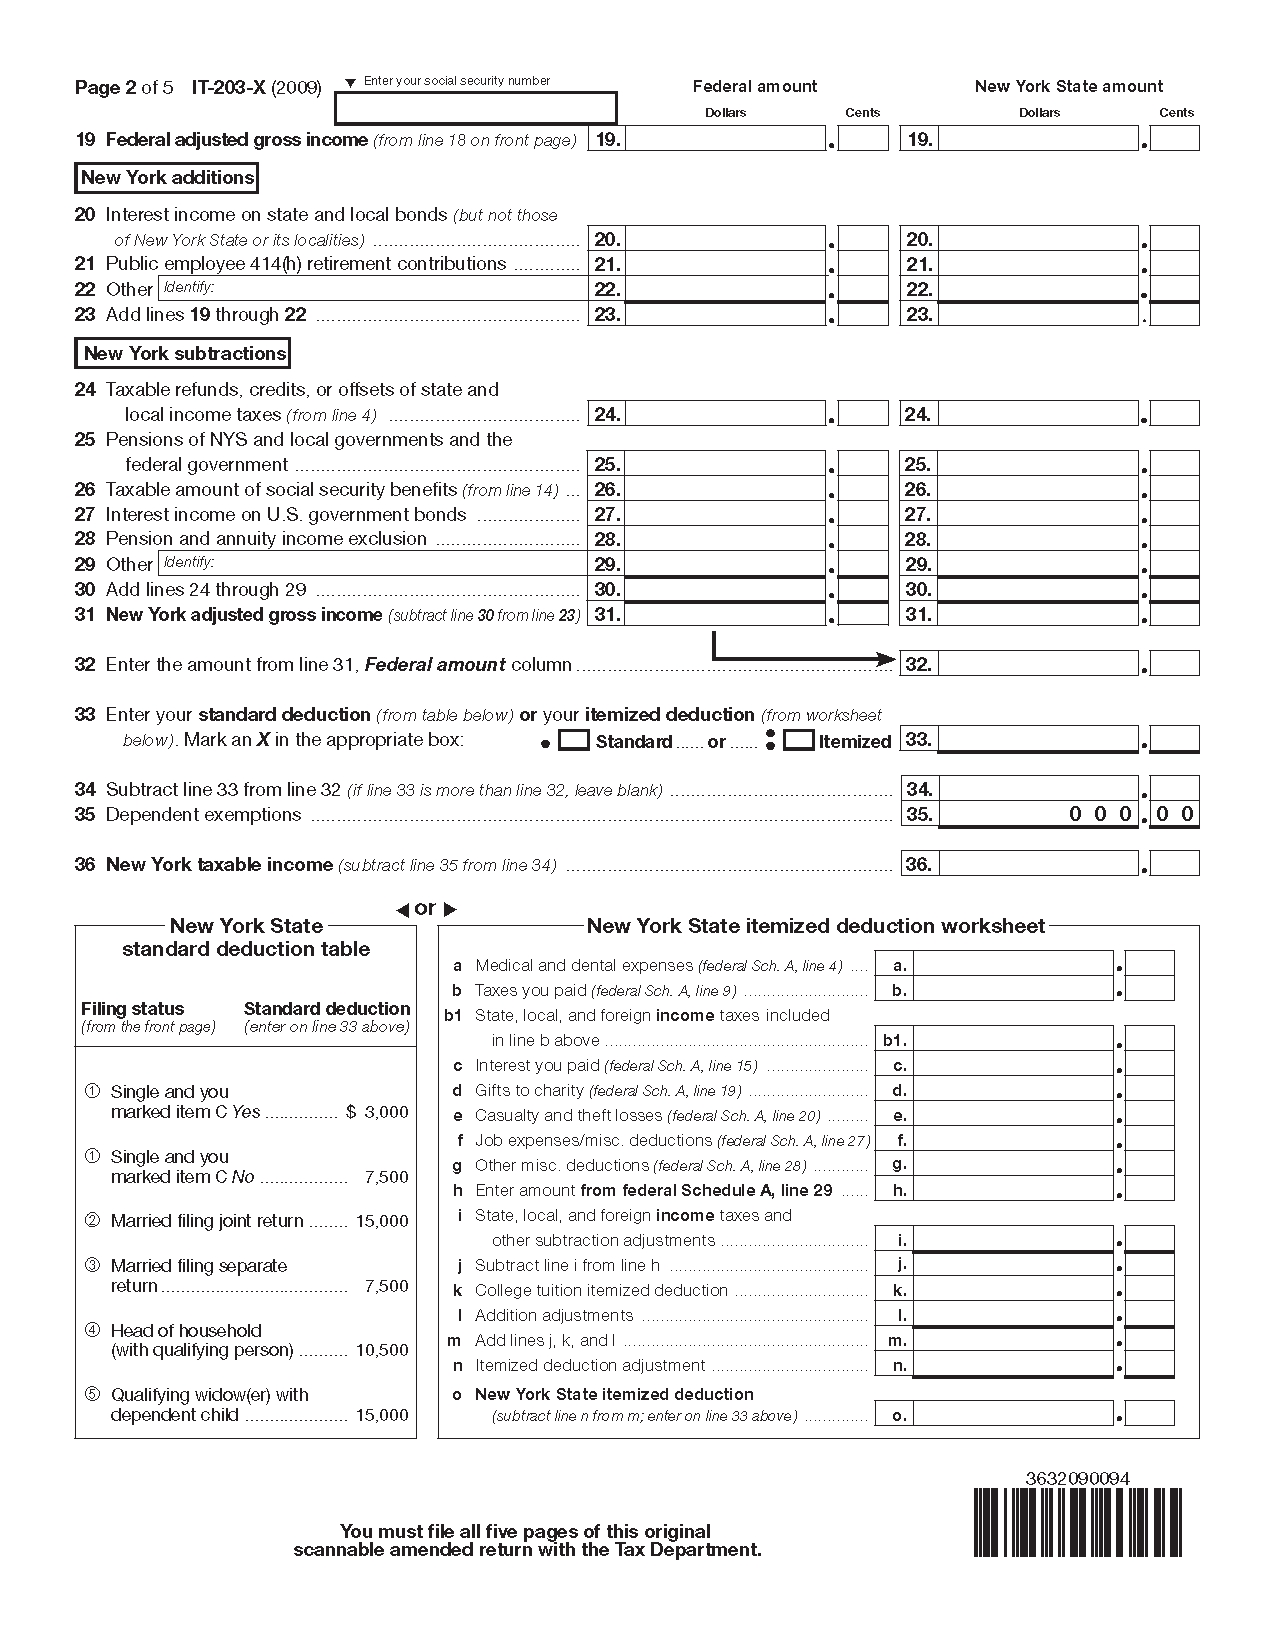 Federal Tax Worksheet And Federal Tax Social